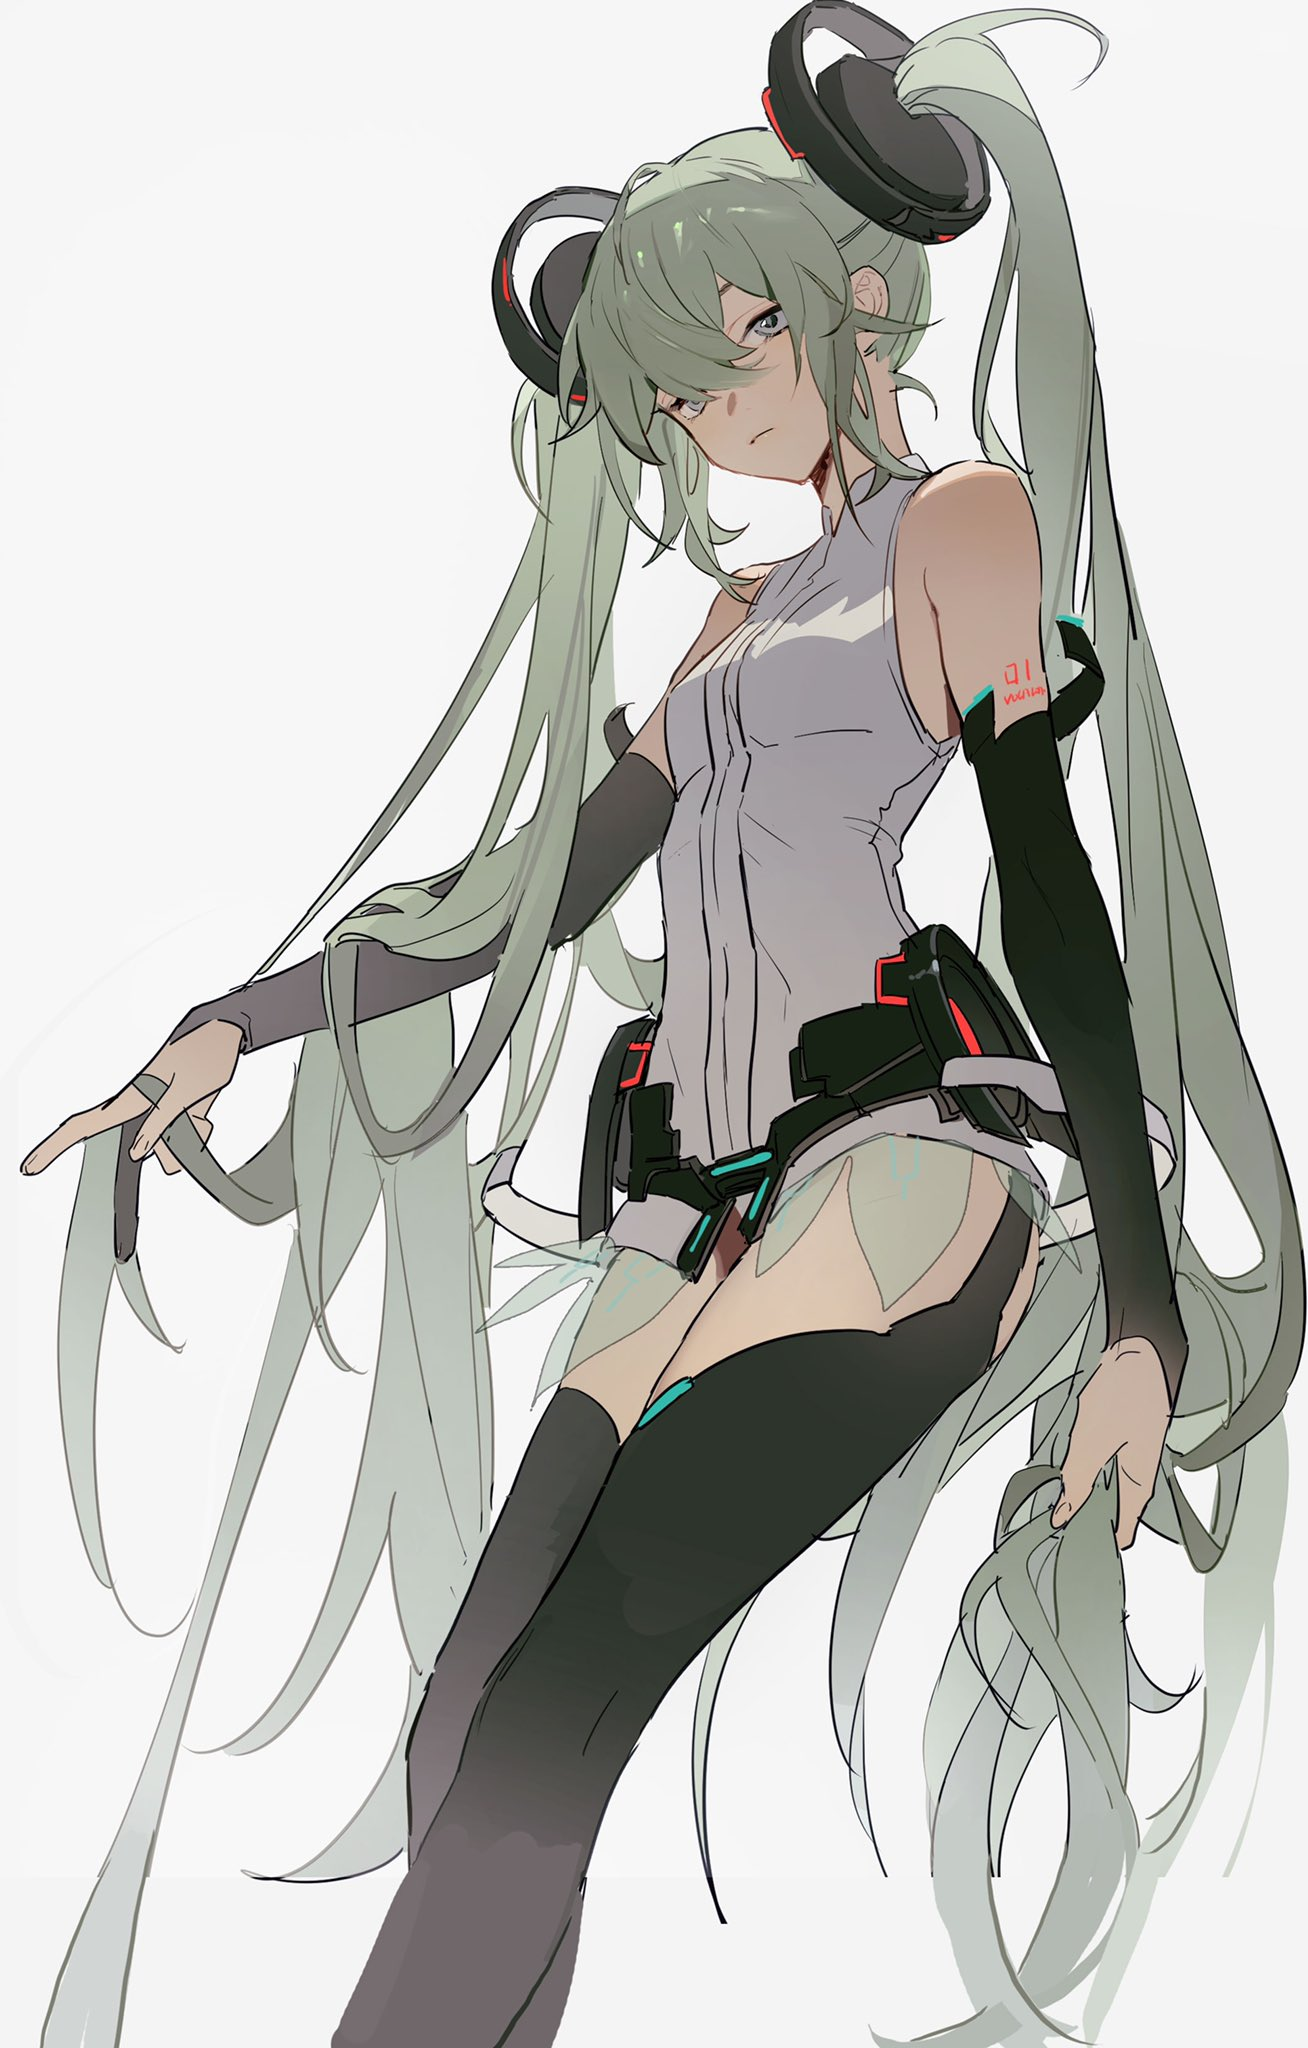 1girl bangs bare_shoulders black_legwear breasts closed_mouth collar detached_sleeves green_hair grey_background grey_eyes hair_between_eyes hair_ornament hatsune_miku highres holding holding_hair long_hair long_sleeves looking_at_viewer shoulder_tattoo sidelocks simple_background solo tattoo twintails very_long_hair vocaloid zhibuji_loom